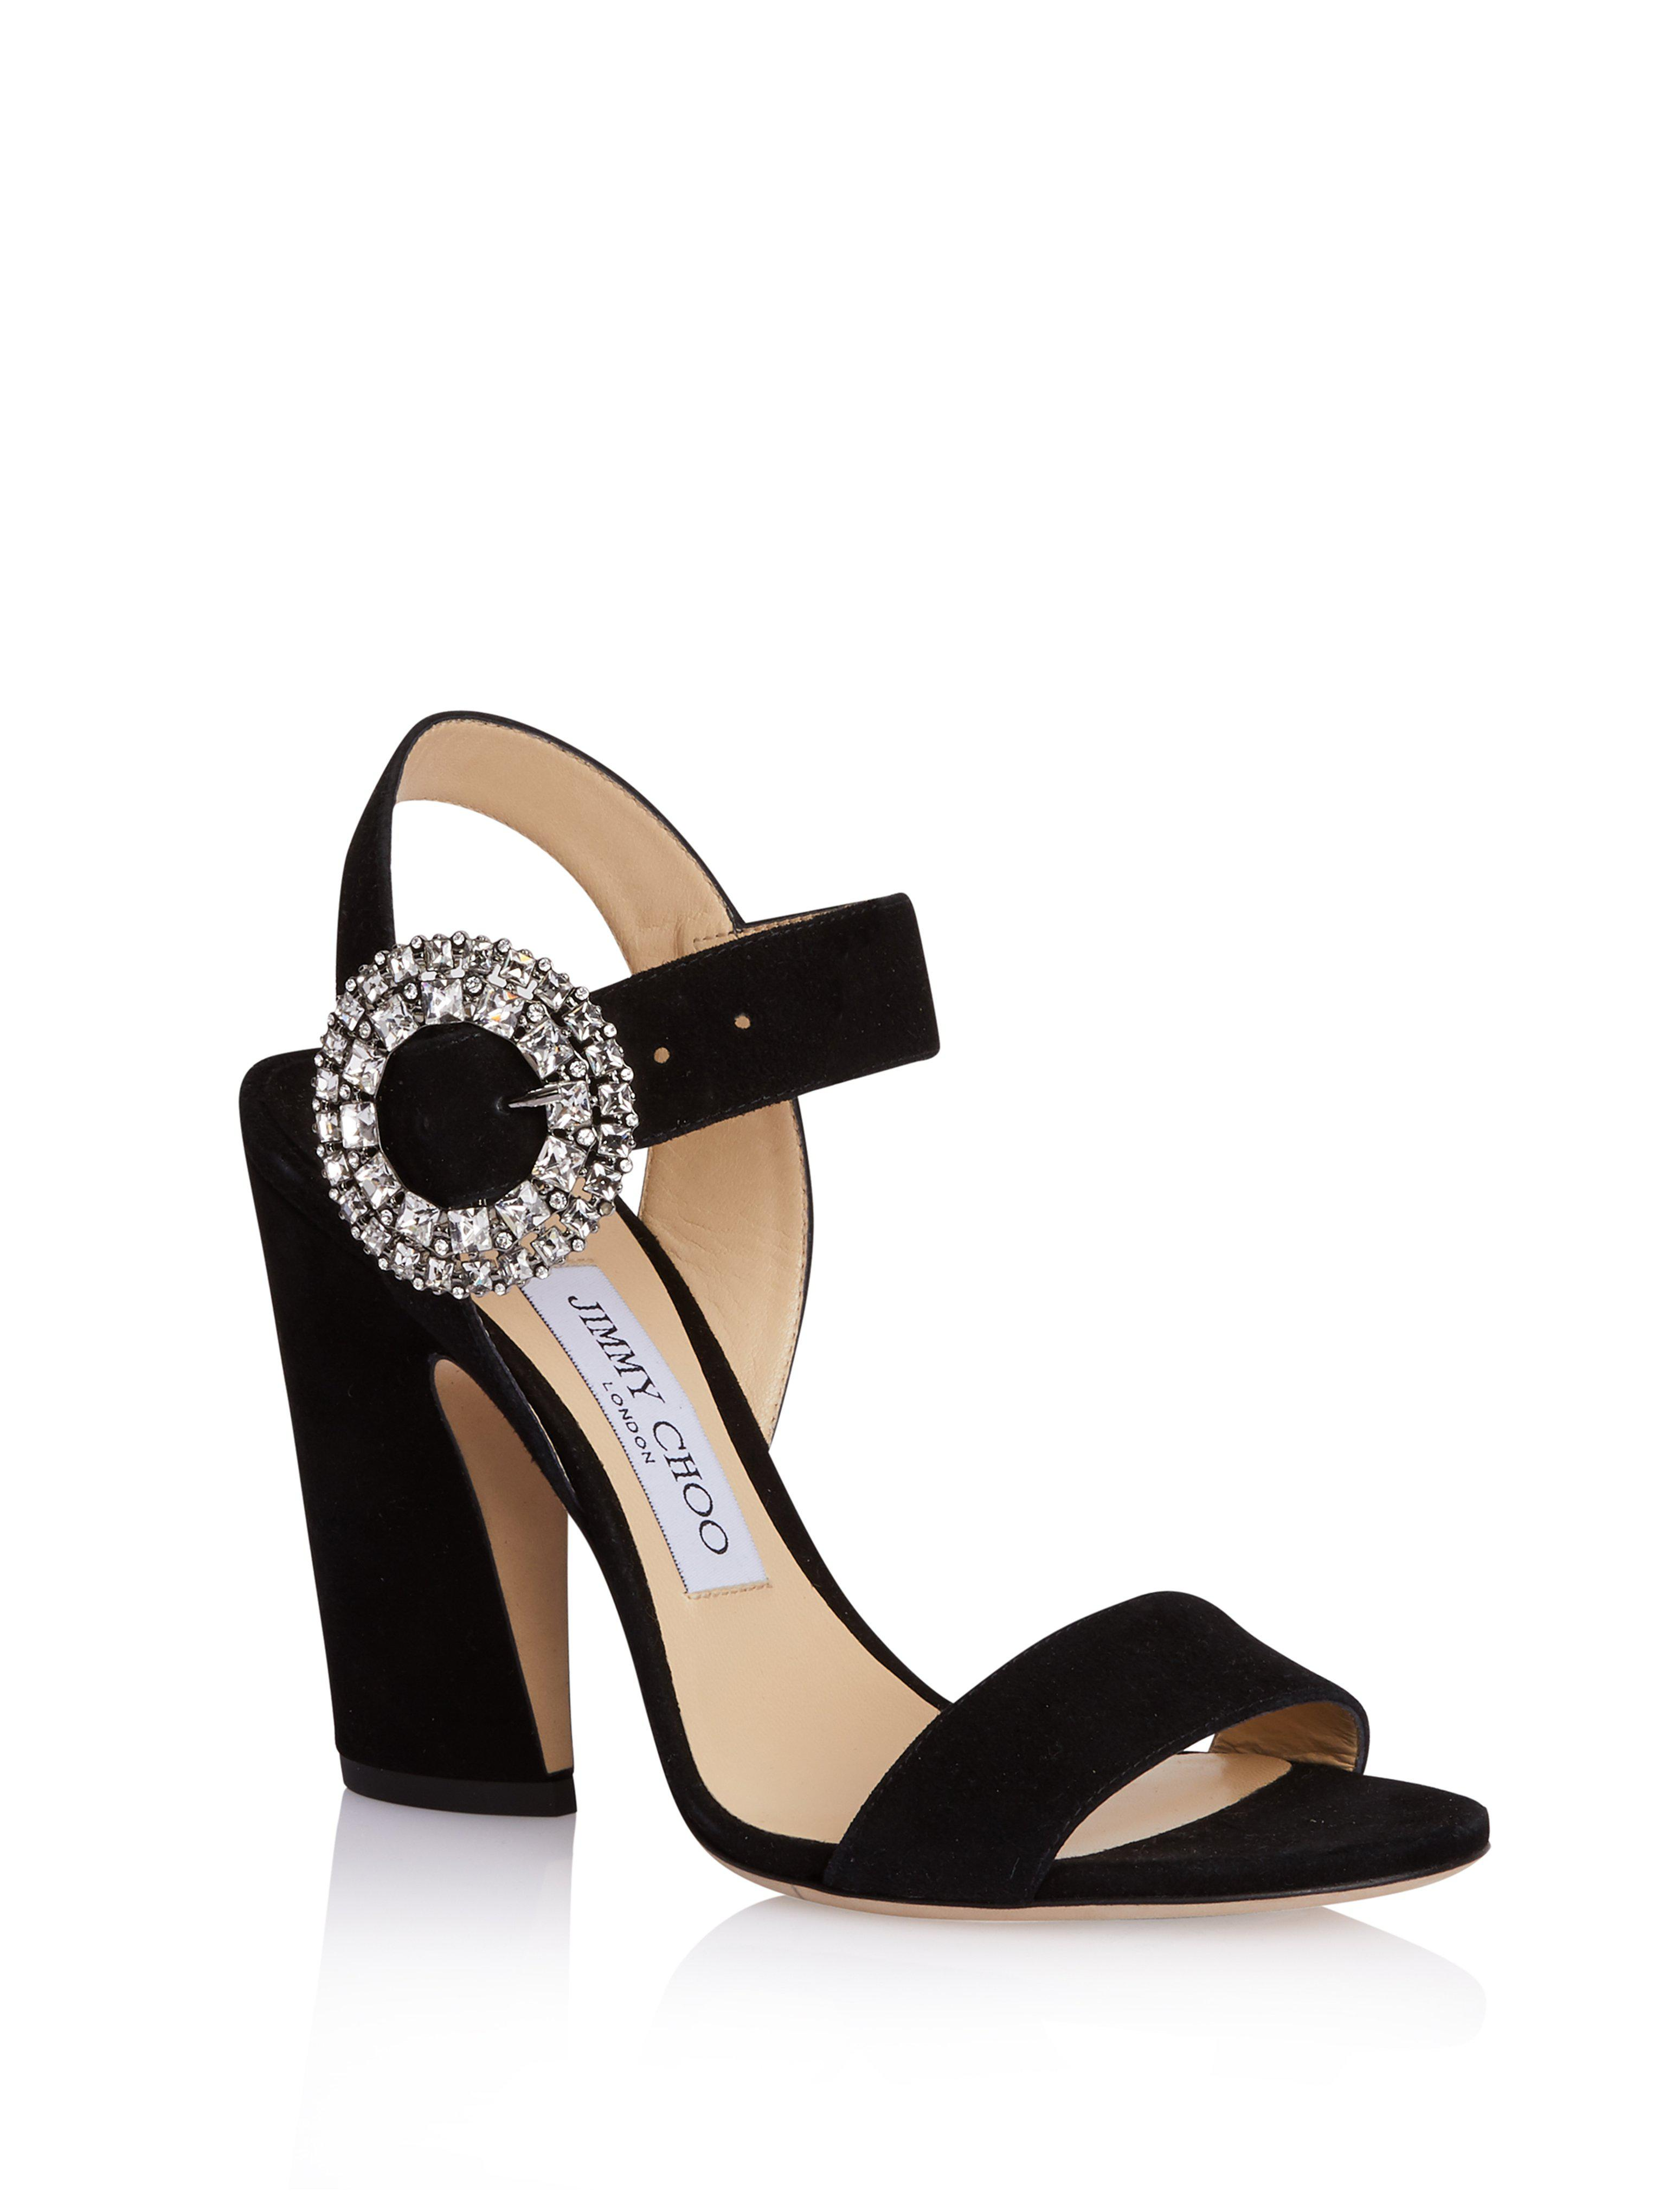 04a53684745e Lyst - Jimmy Choo Mischa 85 Crystal Buckle Sandals in Black